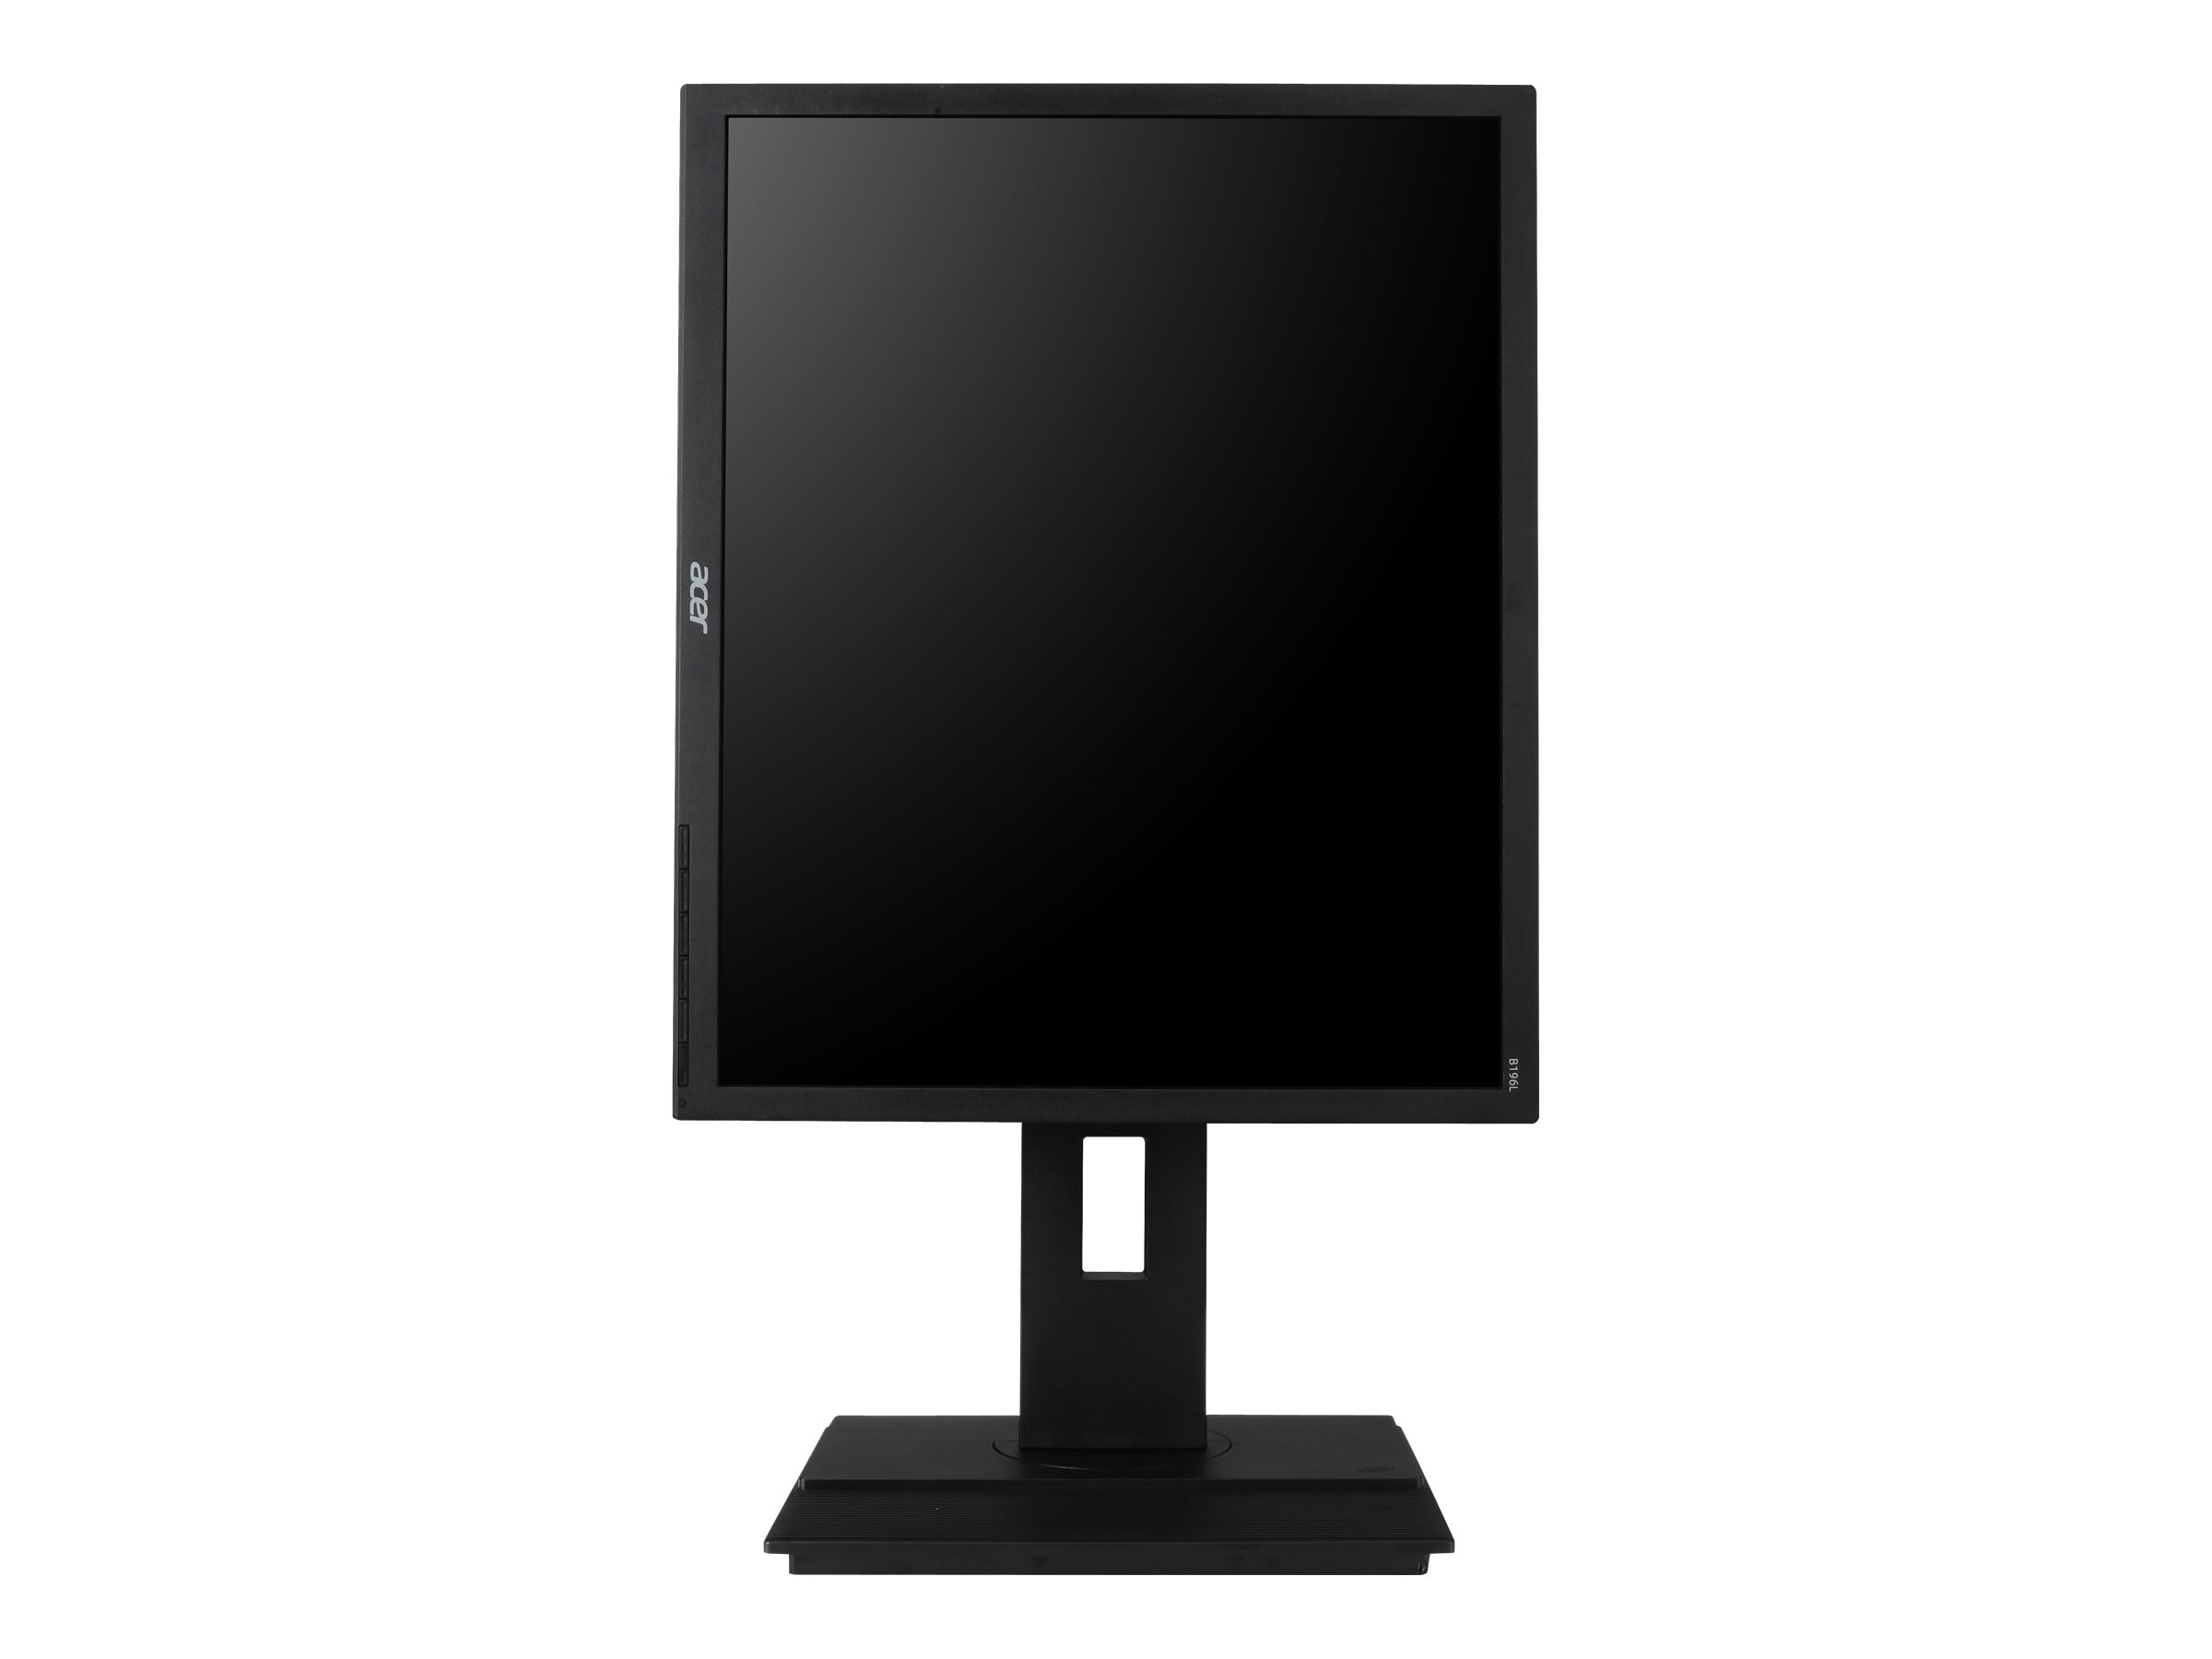 Acer 19 B196L ymdr LED-LCD Monitor, Black, UM.CB6AA.001, 16113780, Monitors - LED-LCD